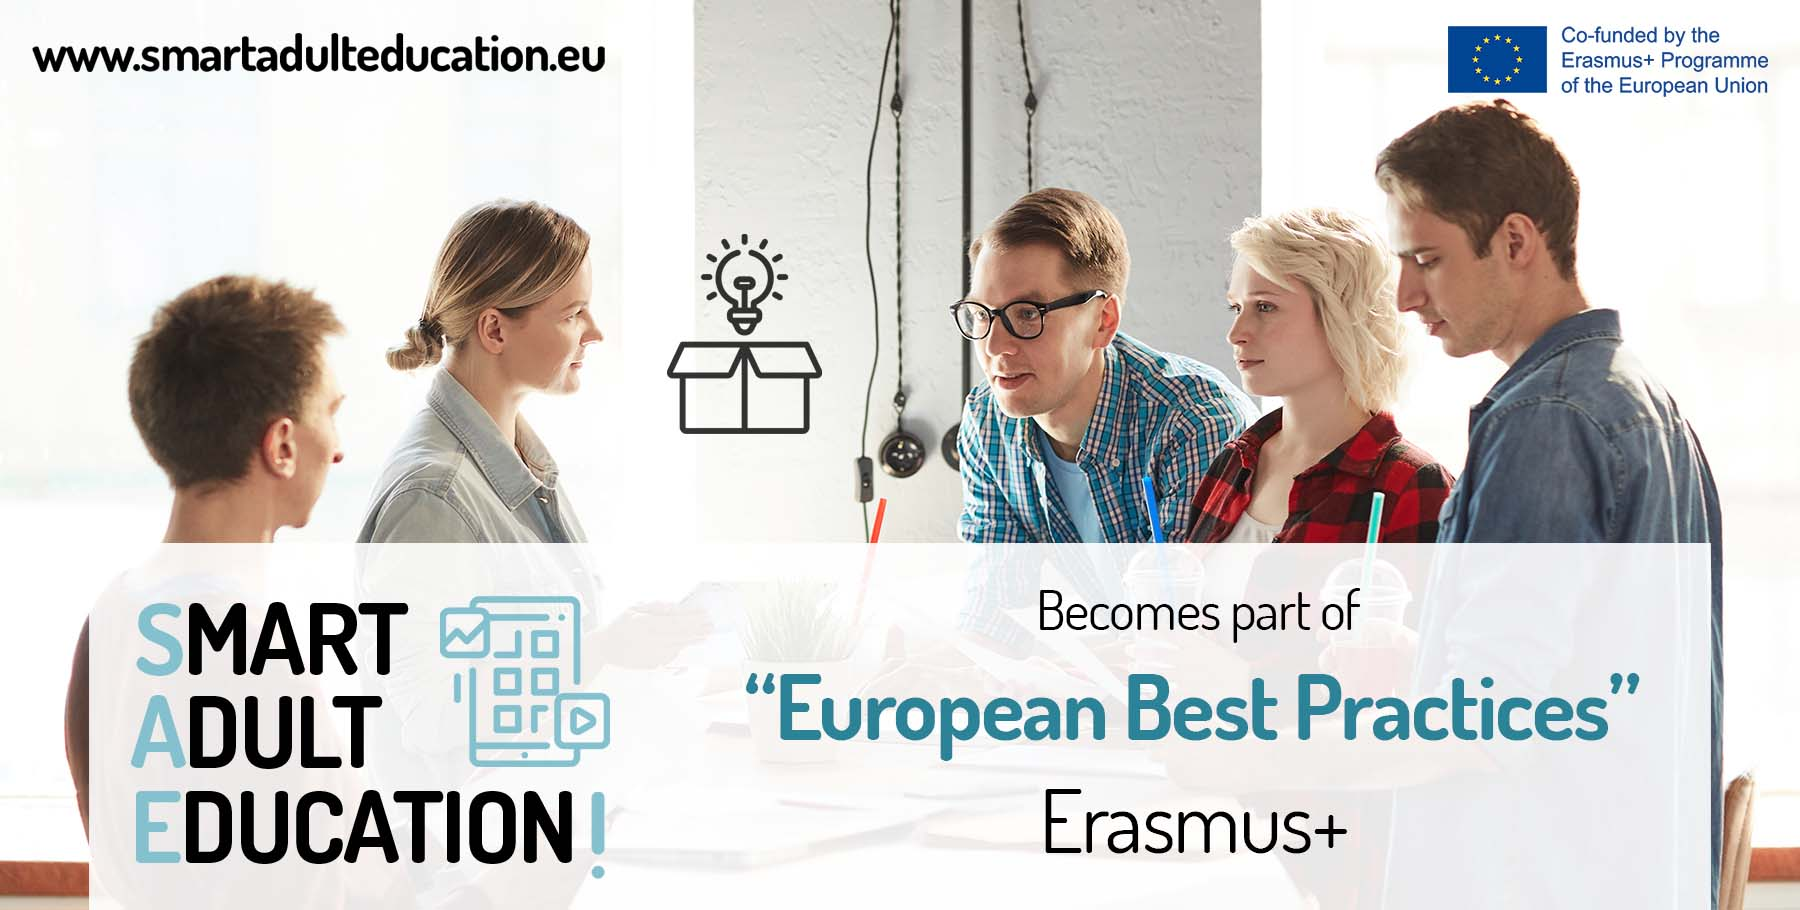 Smart Adult Education becomes part of Erasmus+'s European Best Practices